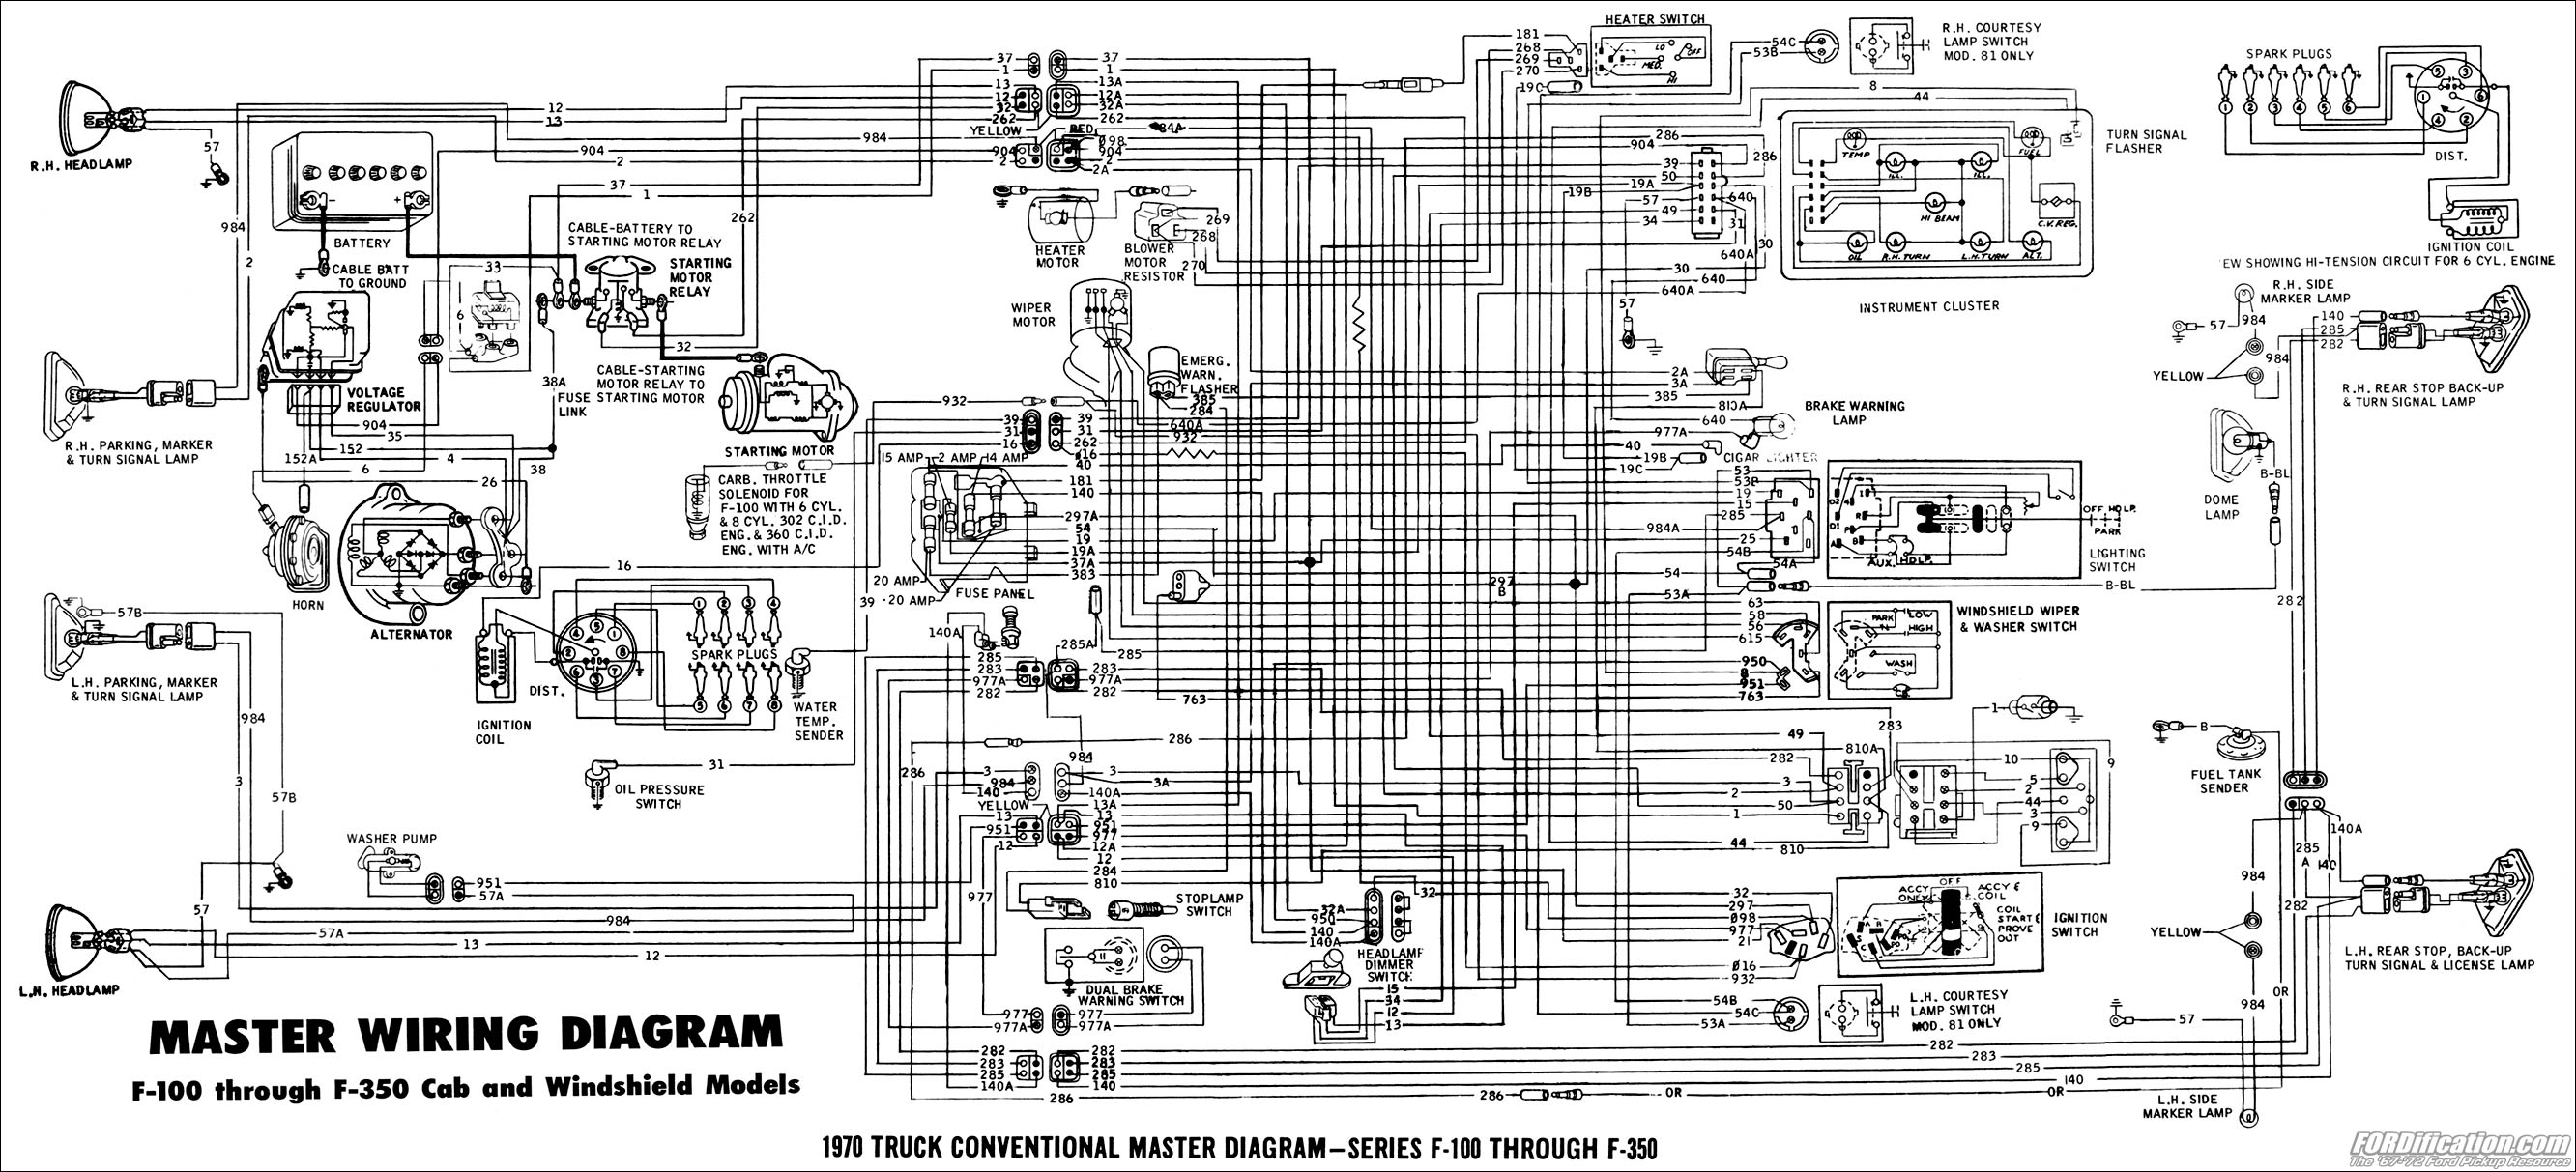 1971 Ford F 250 Explorer Wiring Diagram Wire Diagrams Detailed Schematics For F250 Simple 800 Tractor